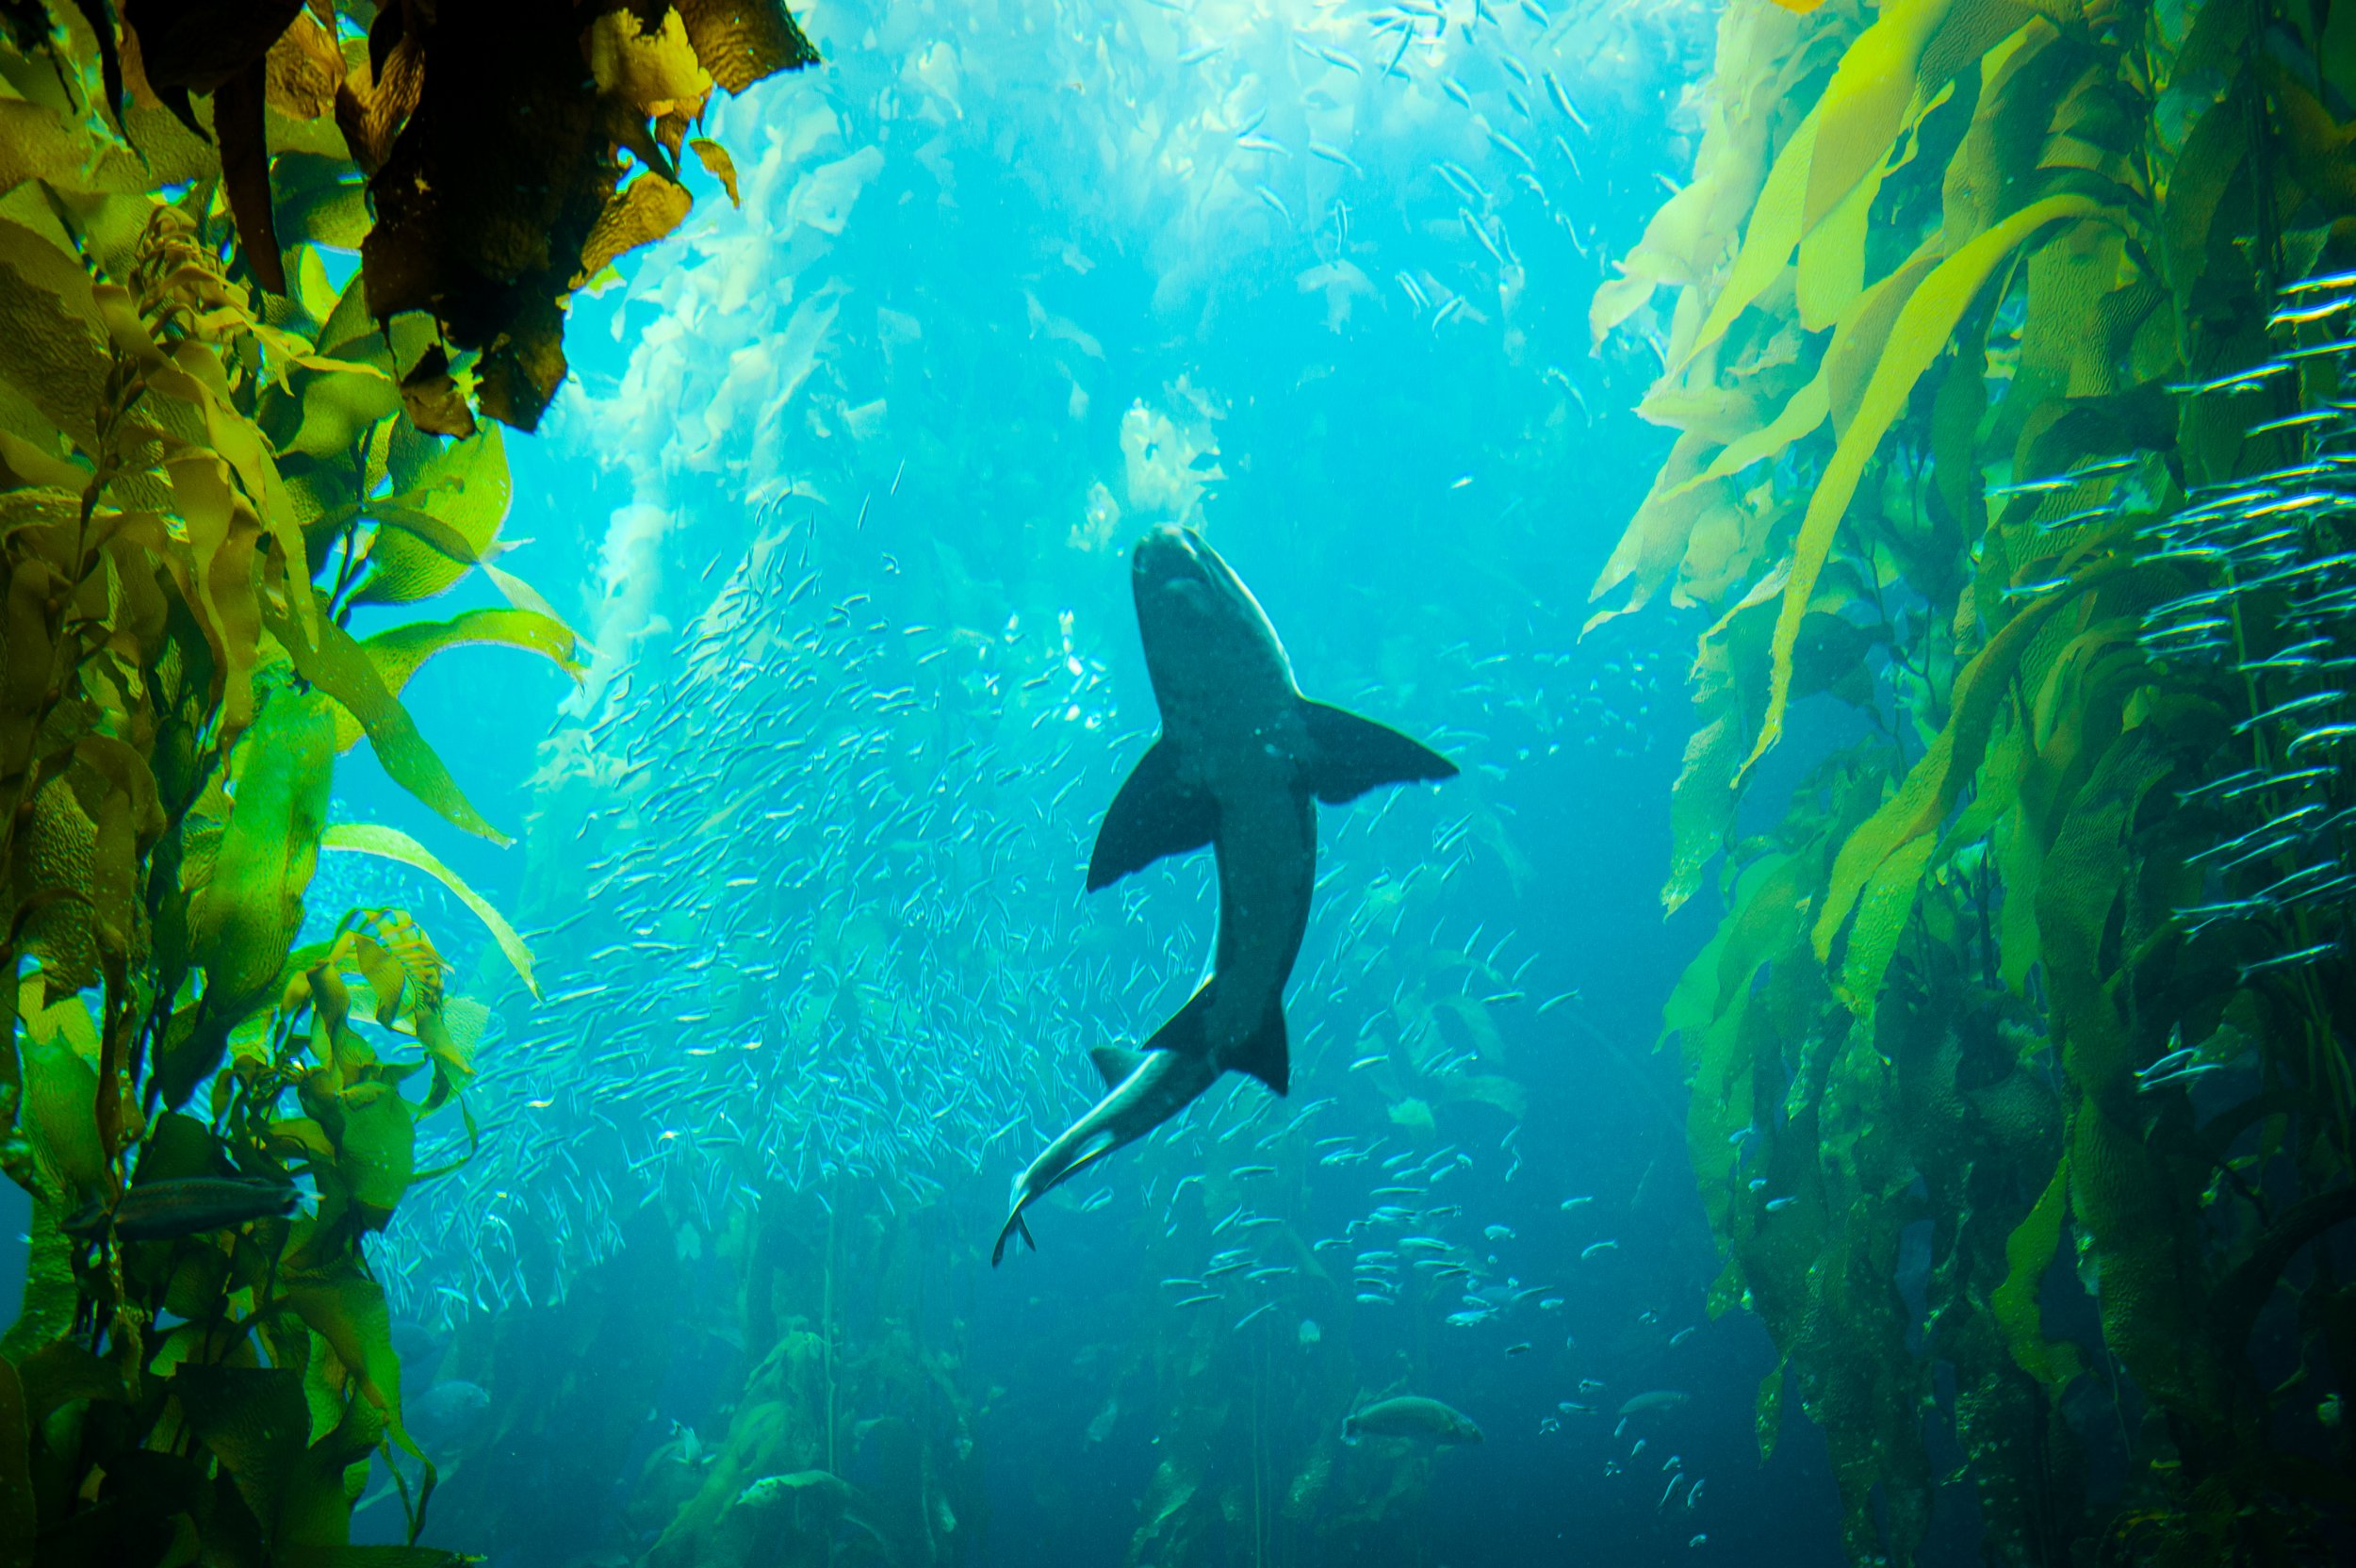 Without sharks the world's oceans would be ruined